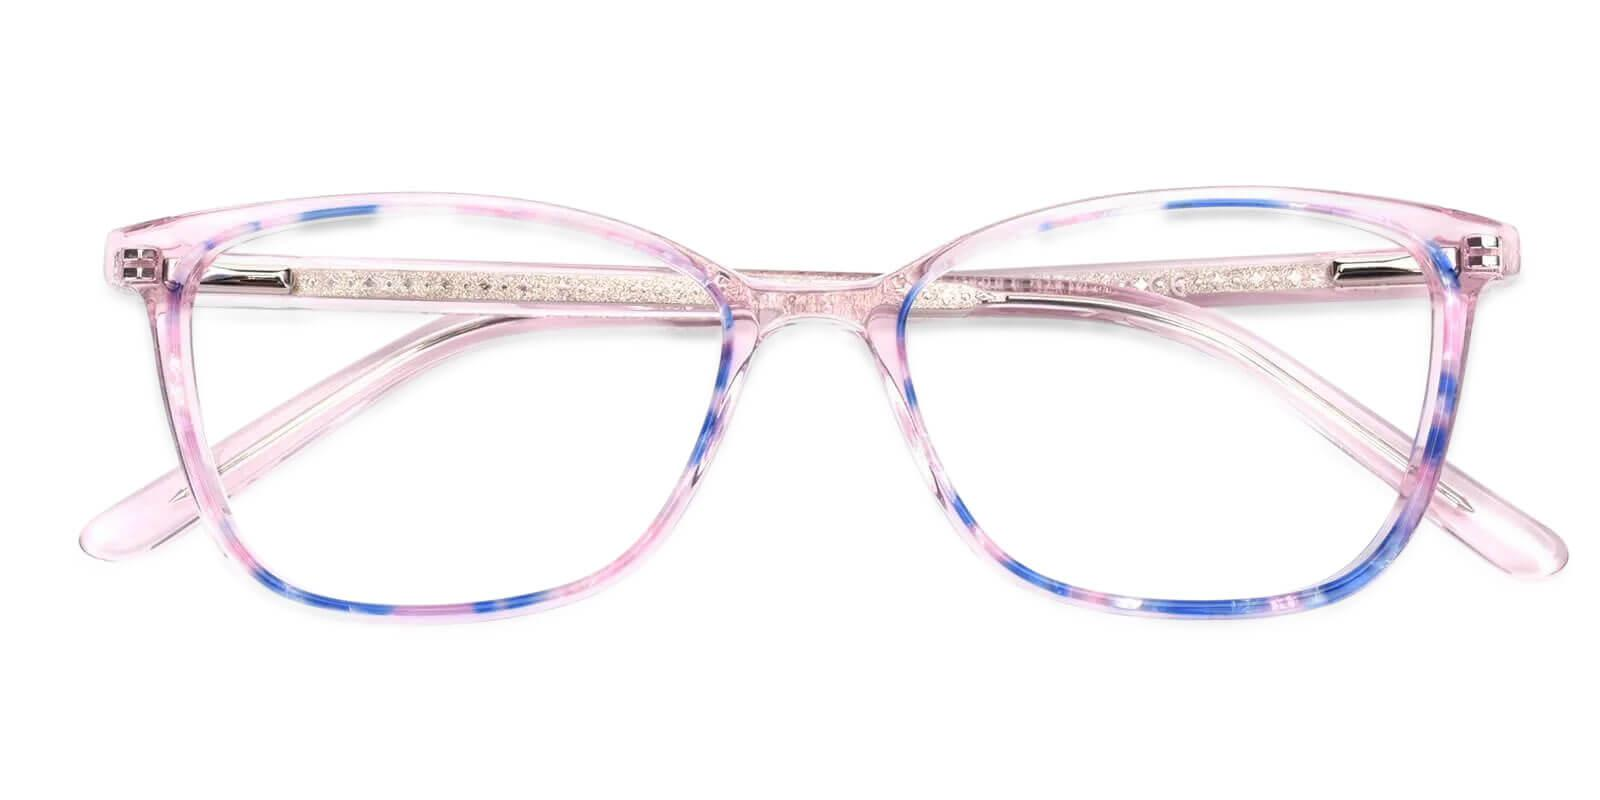 Lucid Pink Acetate Eyeglasses , SpringHinges , UniversalBridgeFit Frames from ABBE Glasses